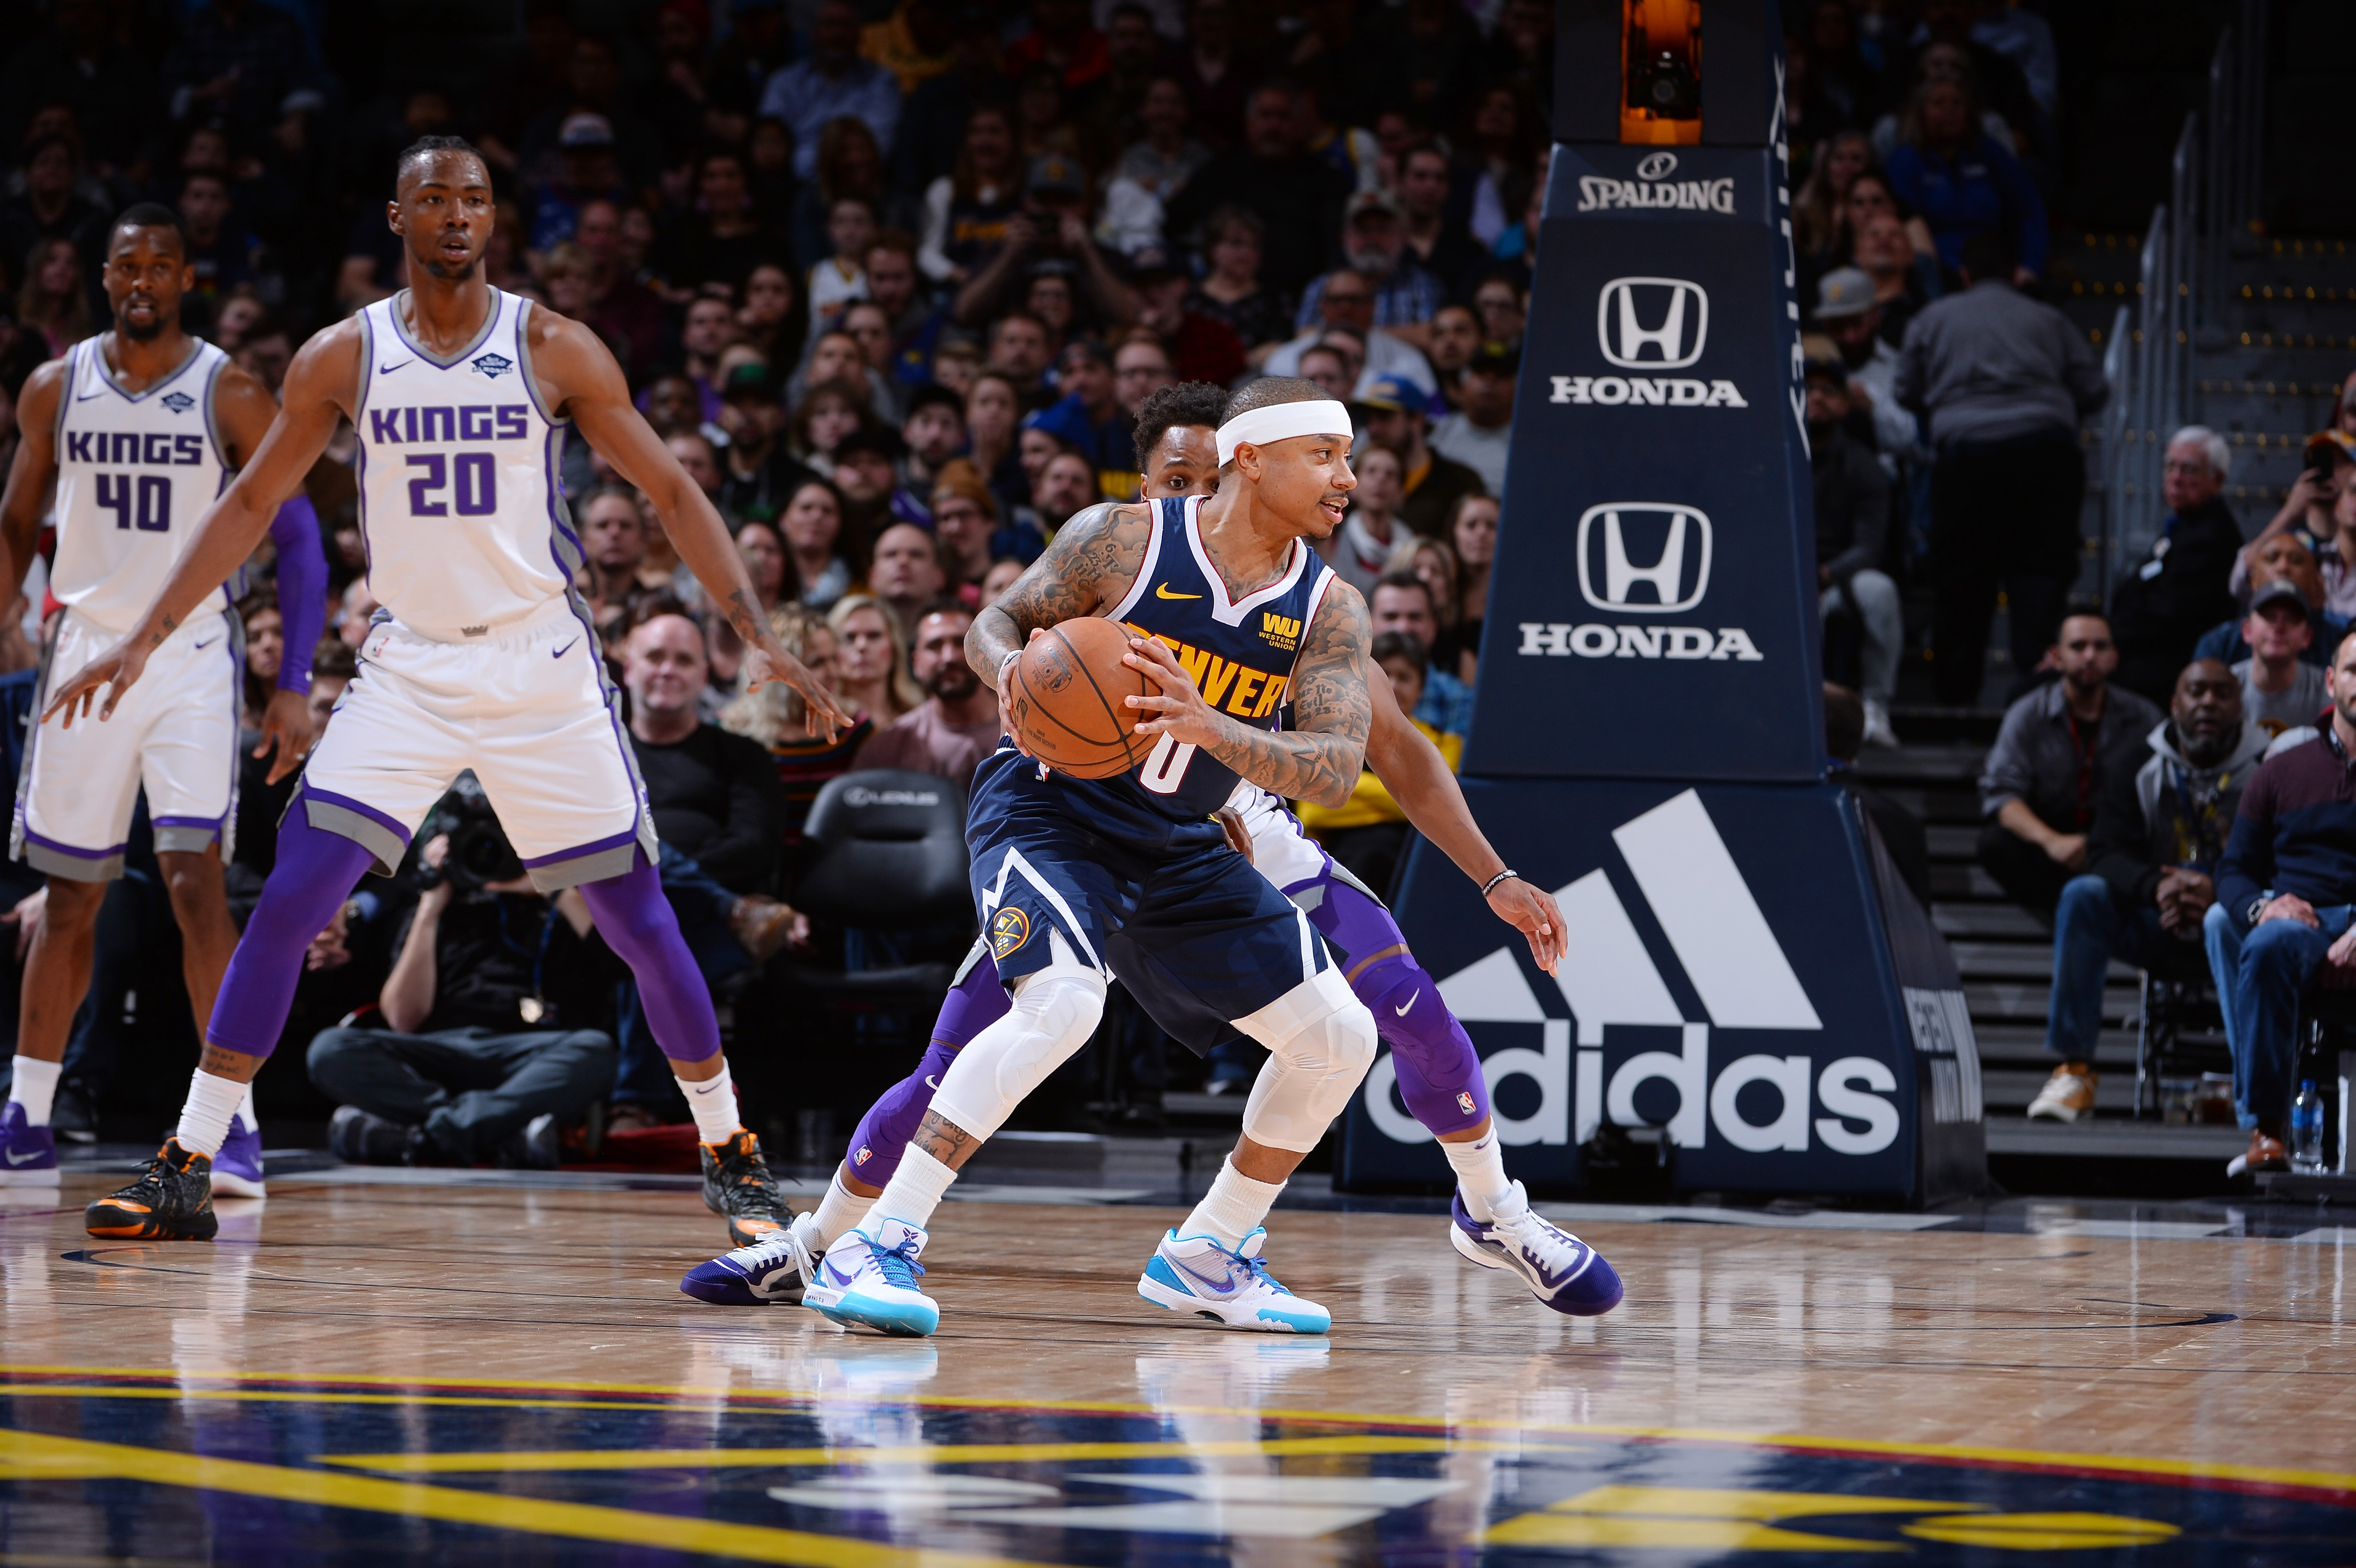 Isaiah Thomas #0 of the Denver Nuggets handles the ball against the Sacramento Kings on February 13, 2019 at the Pepsi Center in Denver